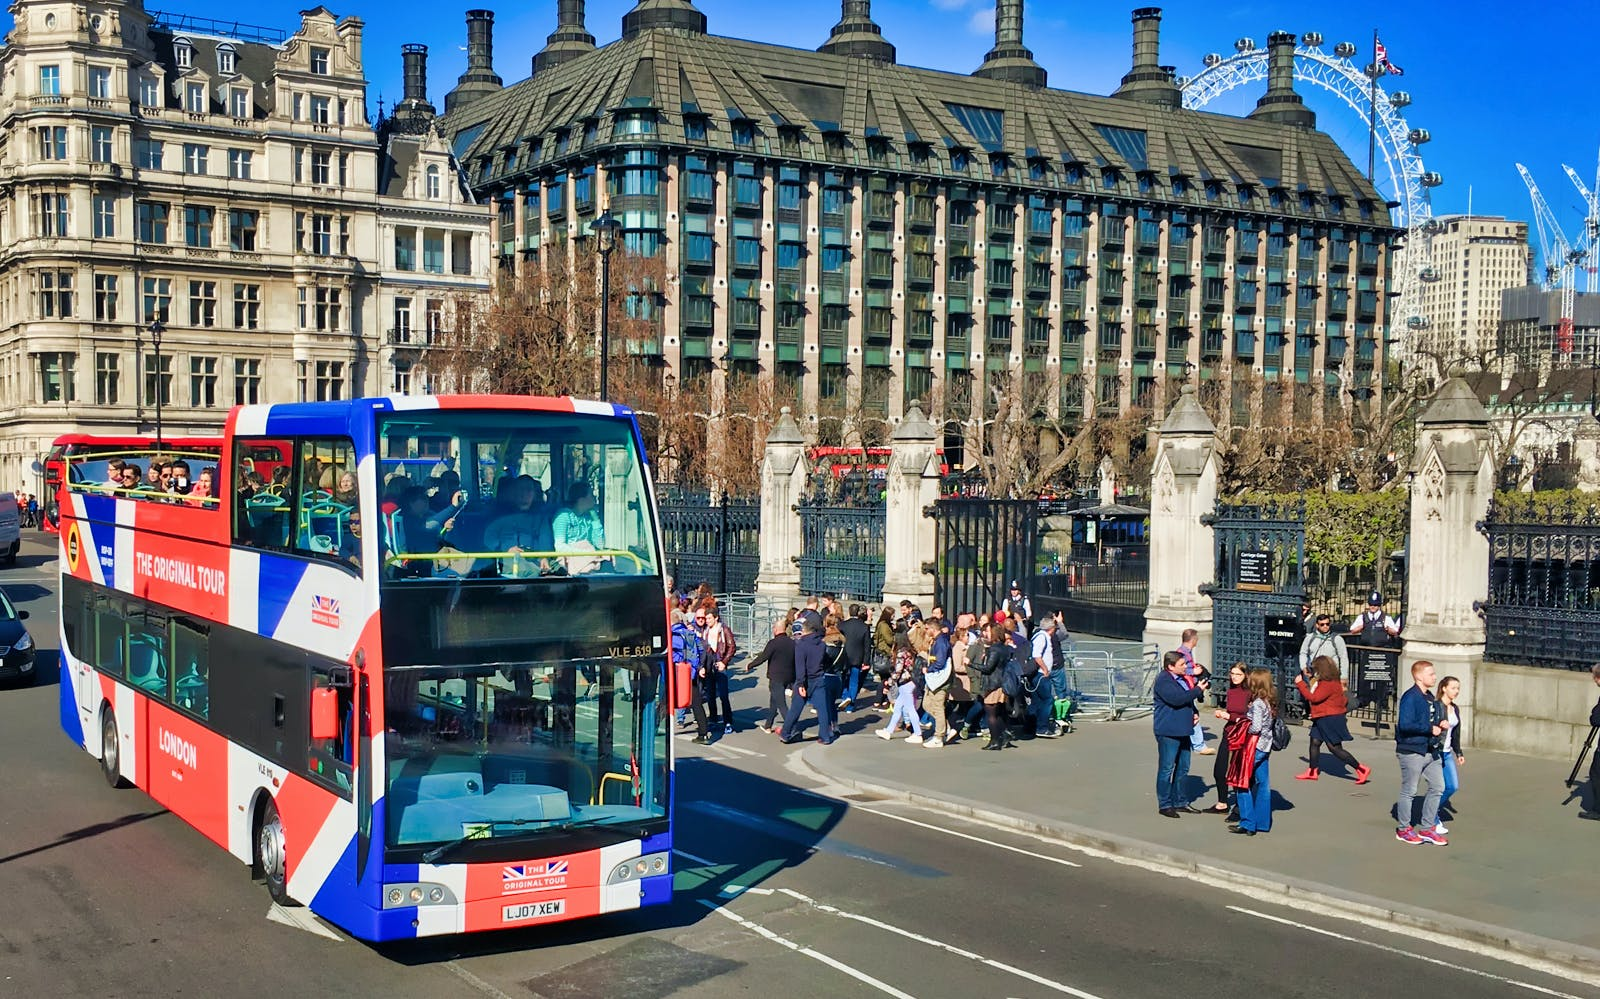 The Original London Hop-On-Hop-Off Sightseeing Bus & Cruise Tour